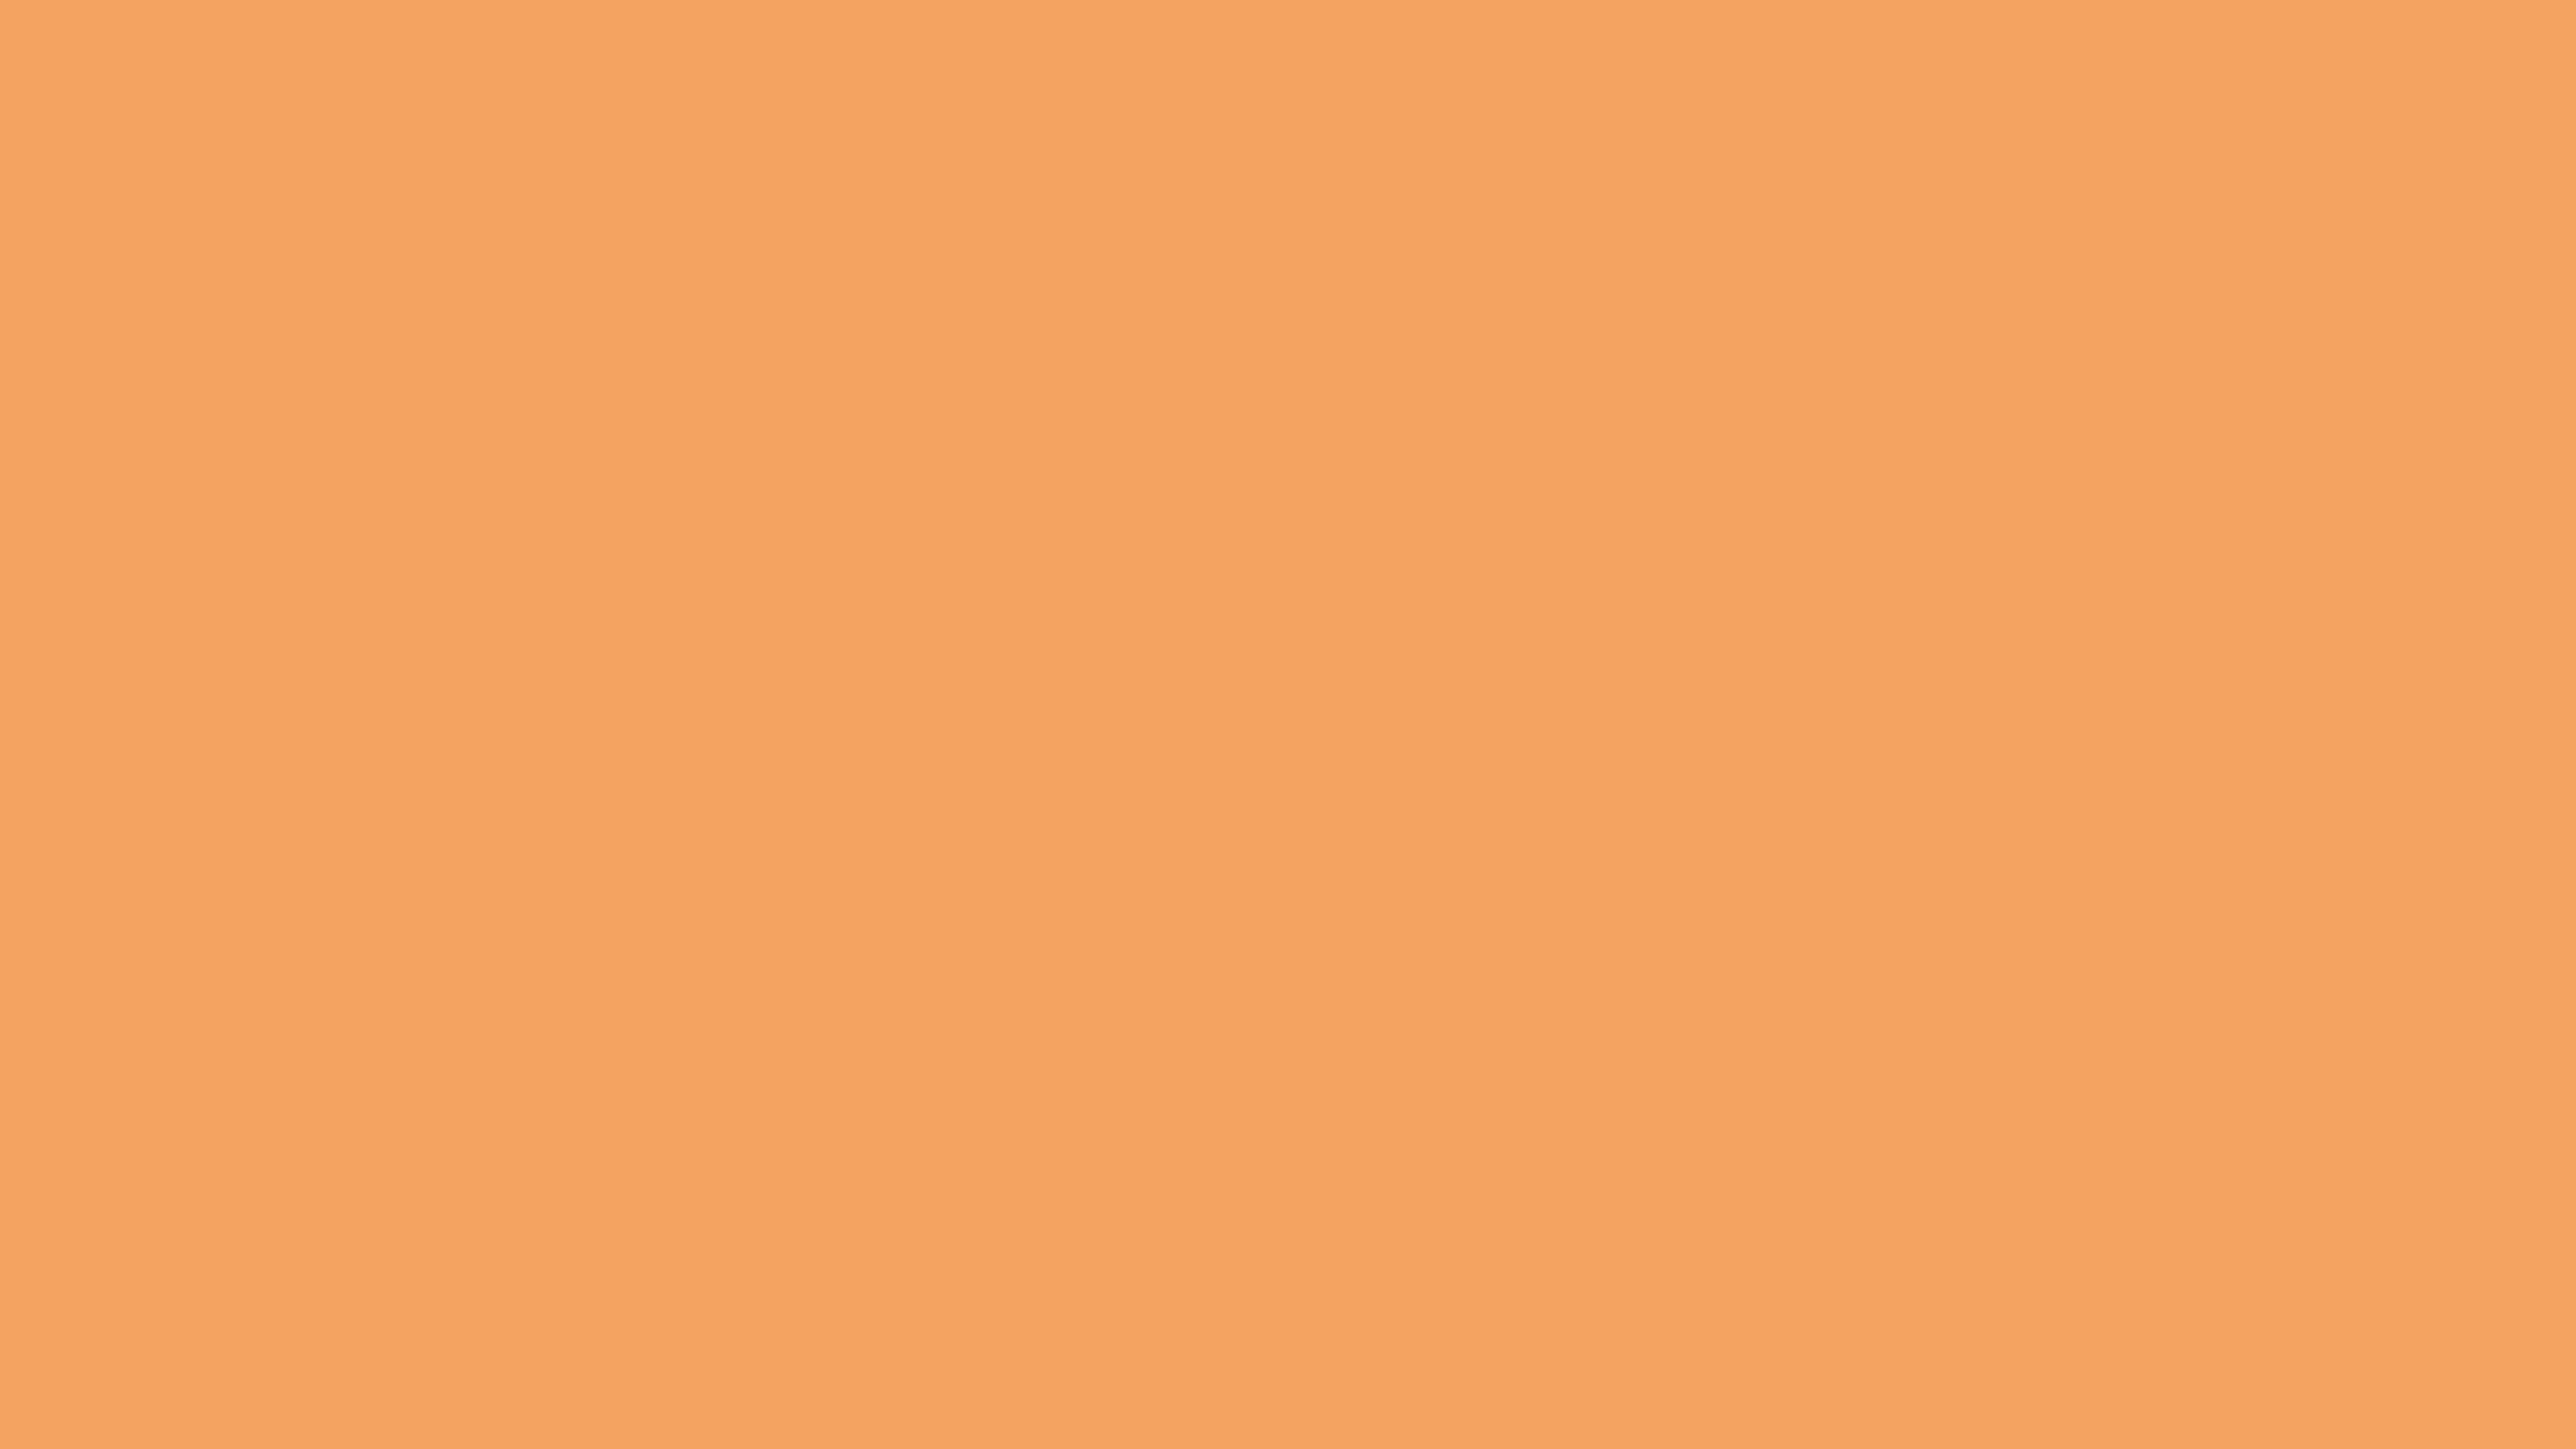 4096x2304 Sandy Brown Solid Color Background